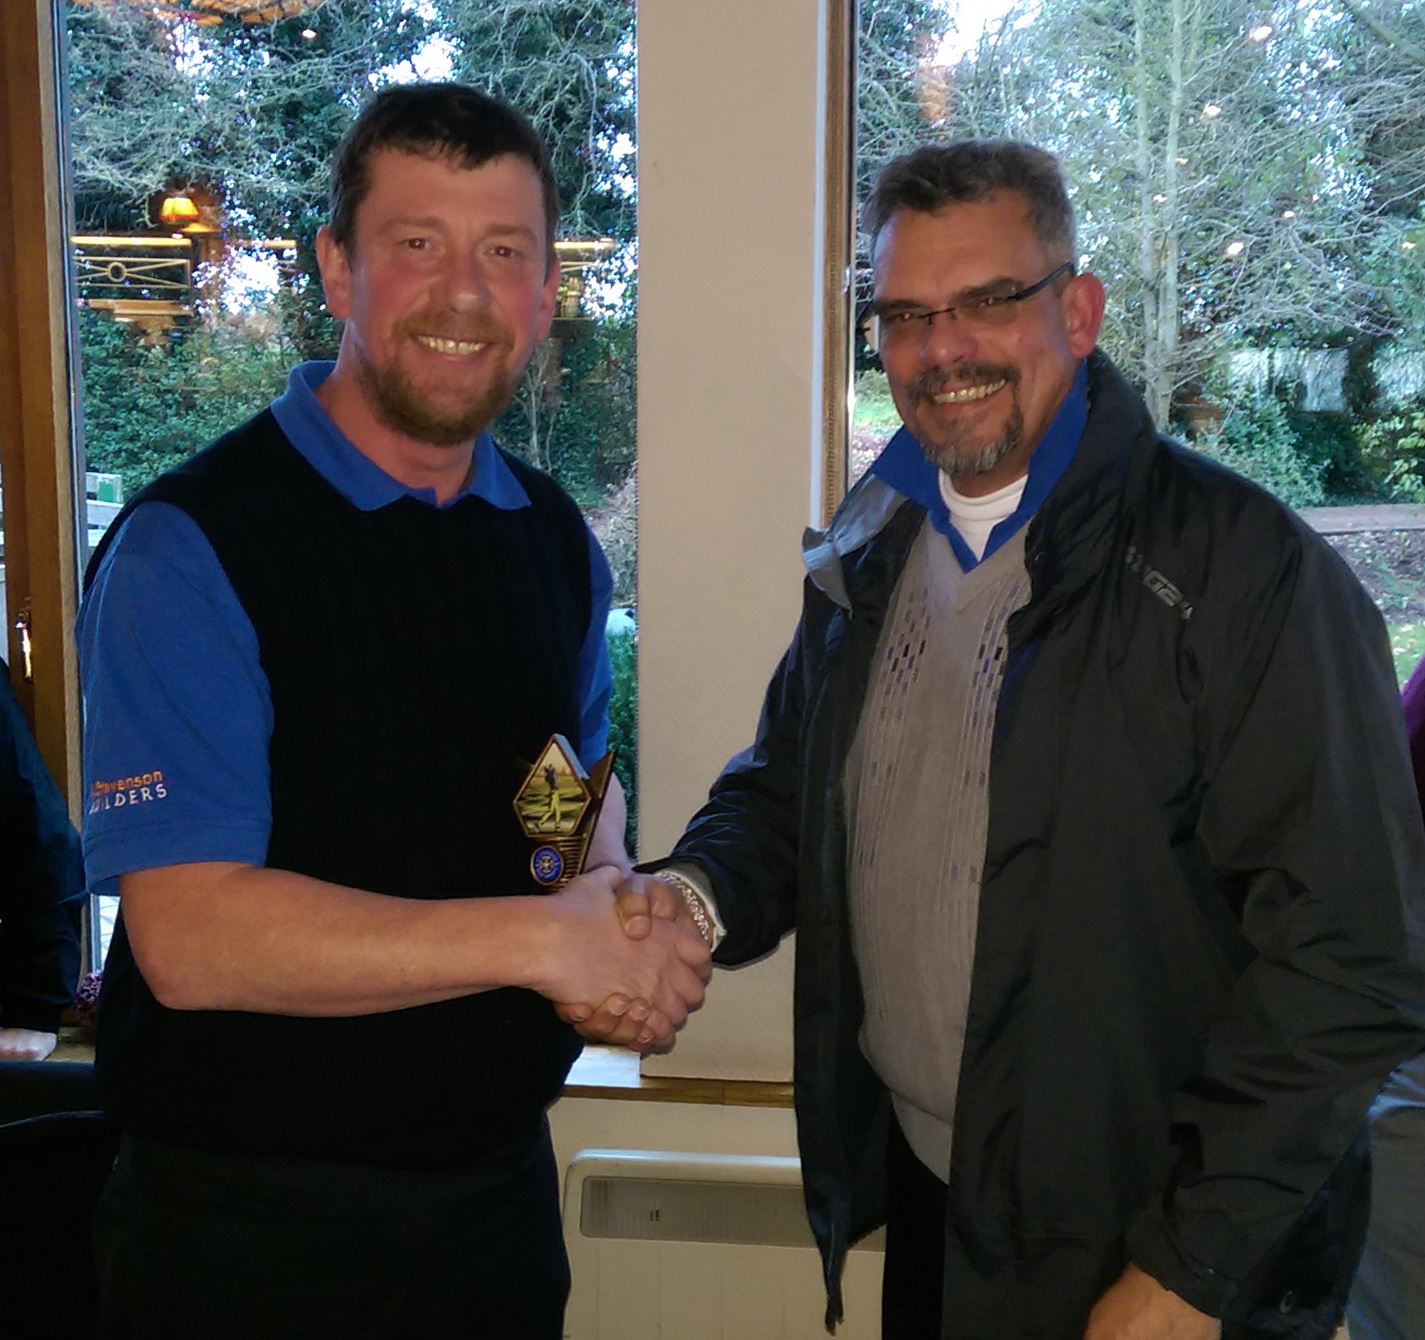 society photos 2015 st stephen s golf society in canterbury kent runner up alex mcbeth 21 40pts trophy presented by nigel stevenson club sec